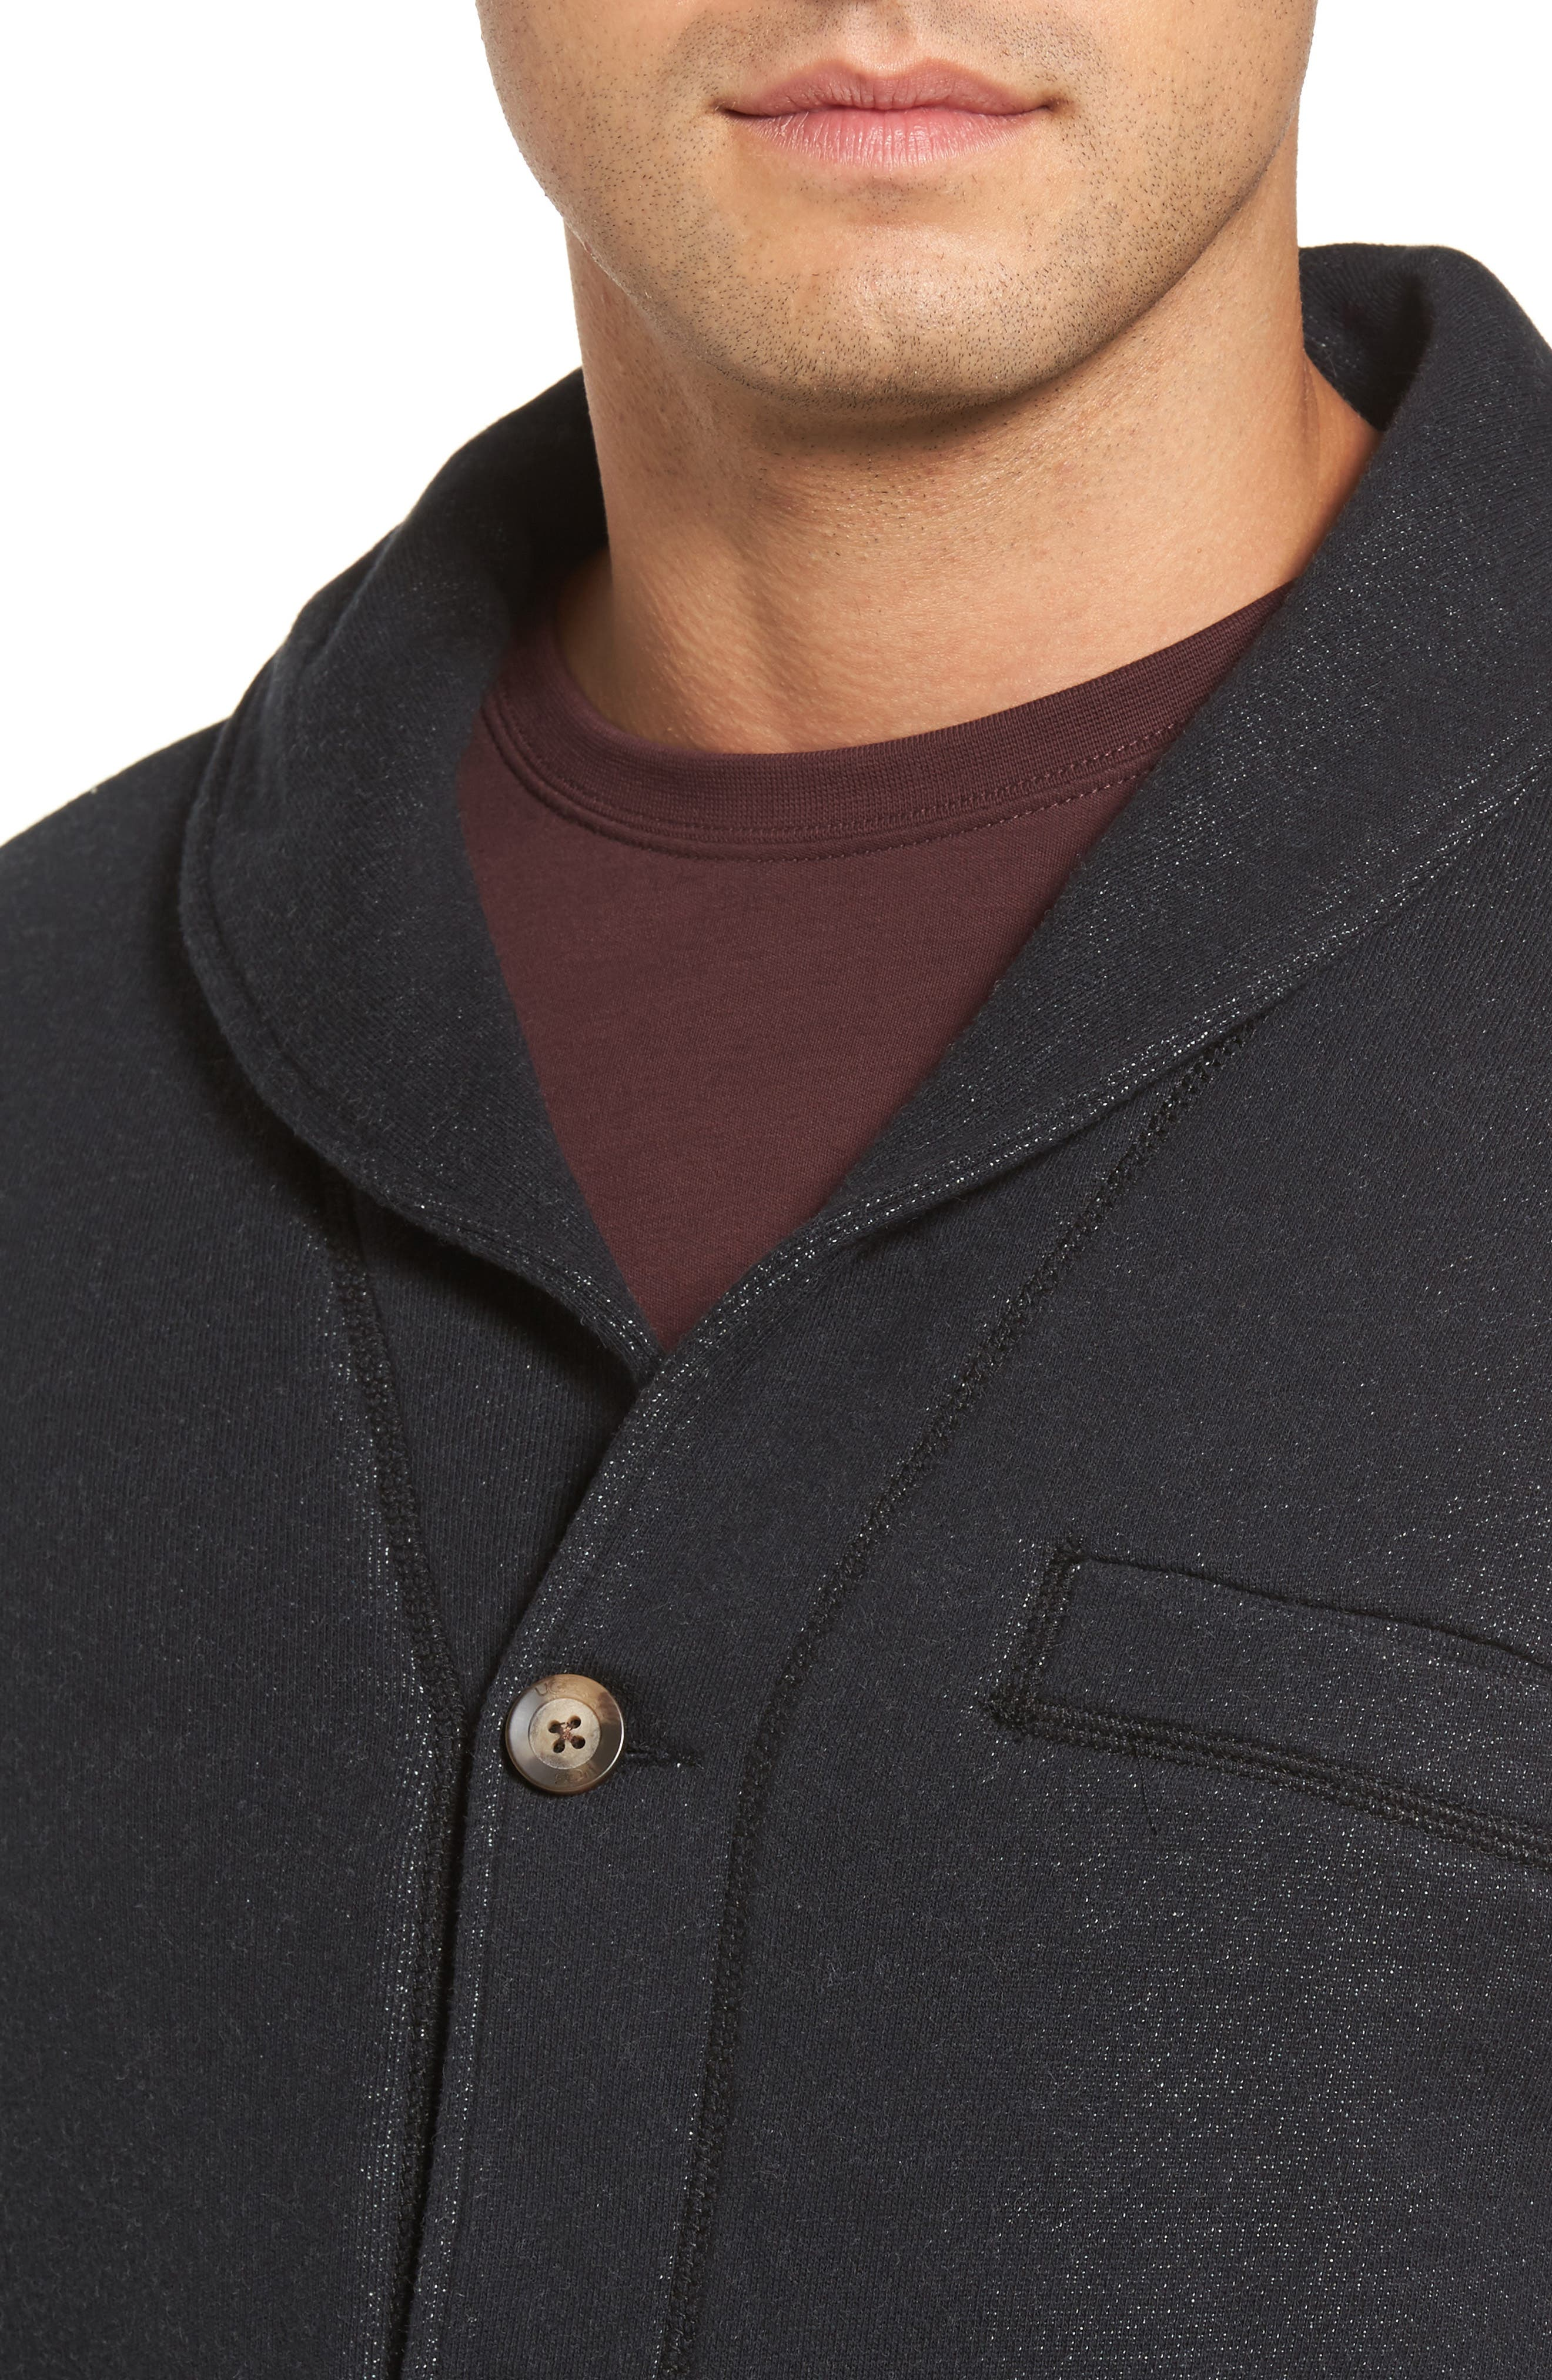 Faux Shearling Lined Shawl Collar Cardigan,                             Alternate thumbnail 4, color,                             001